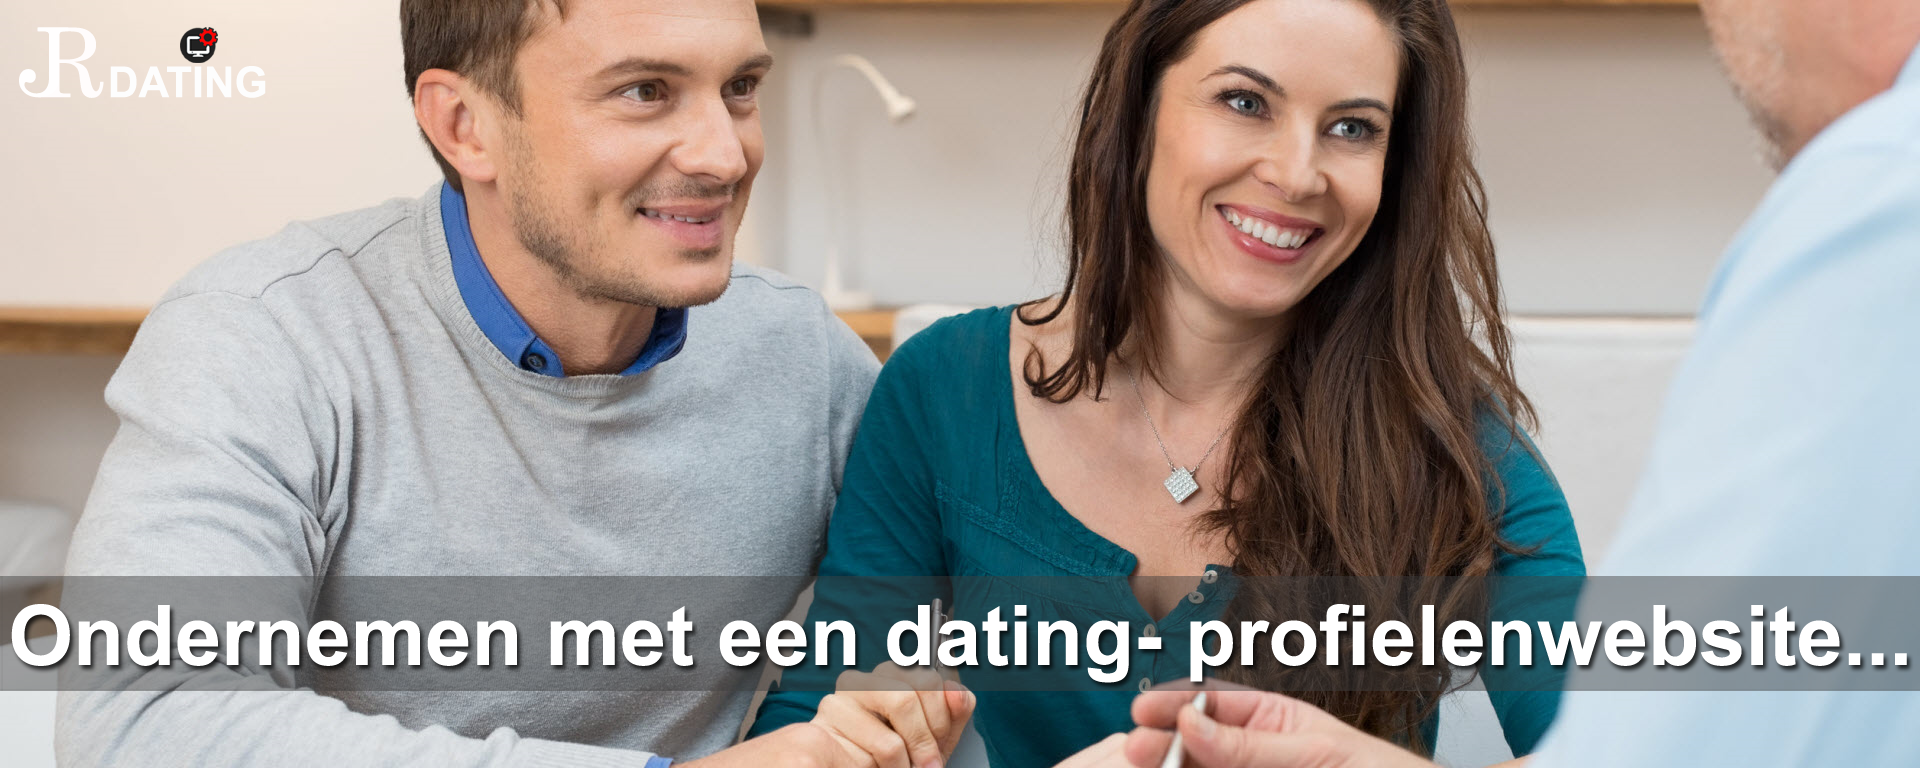 WikiHow dating instructies